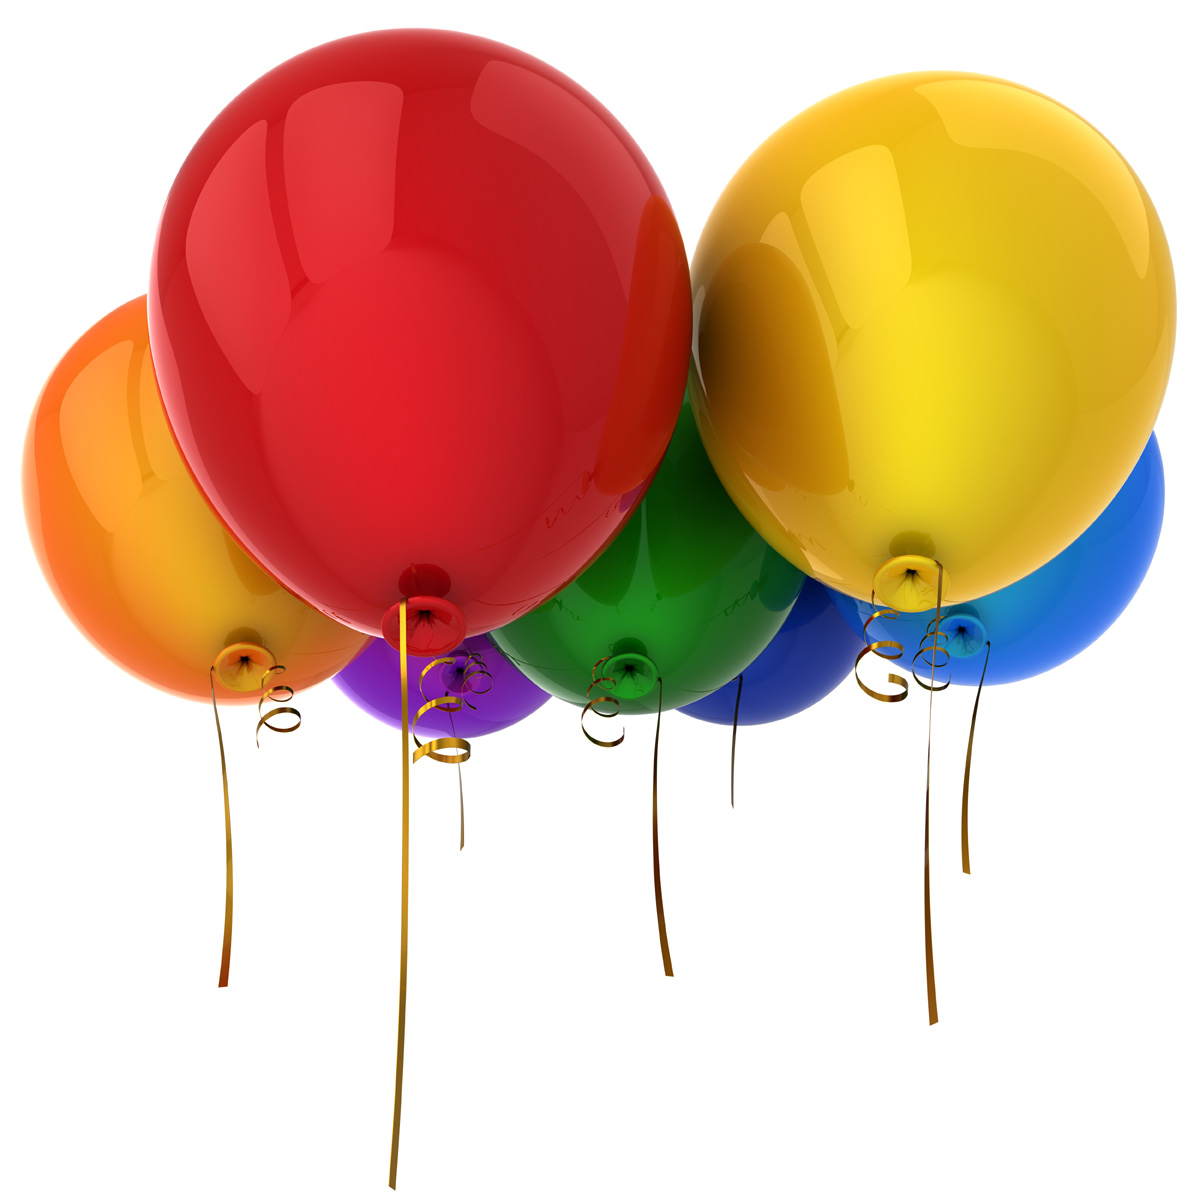 Colorful balloons 16462